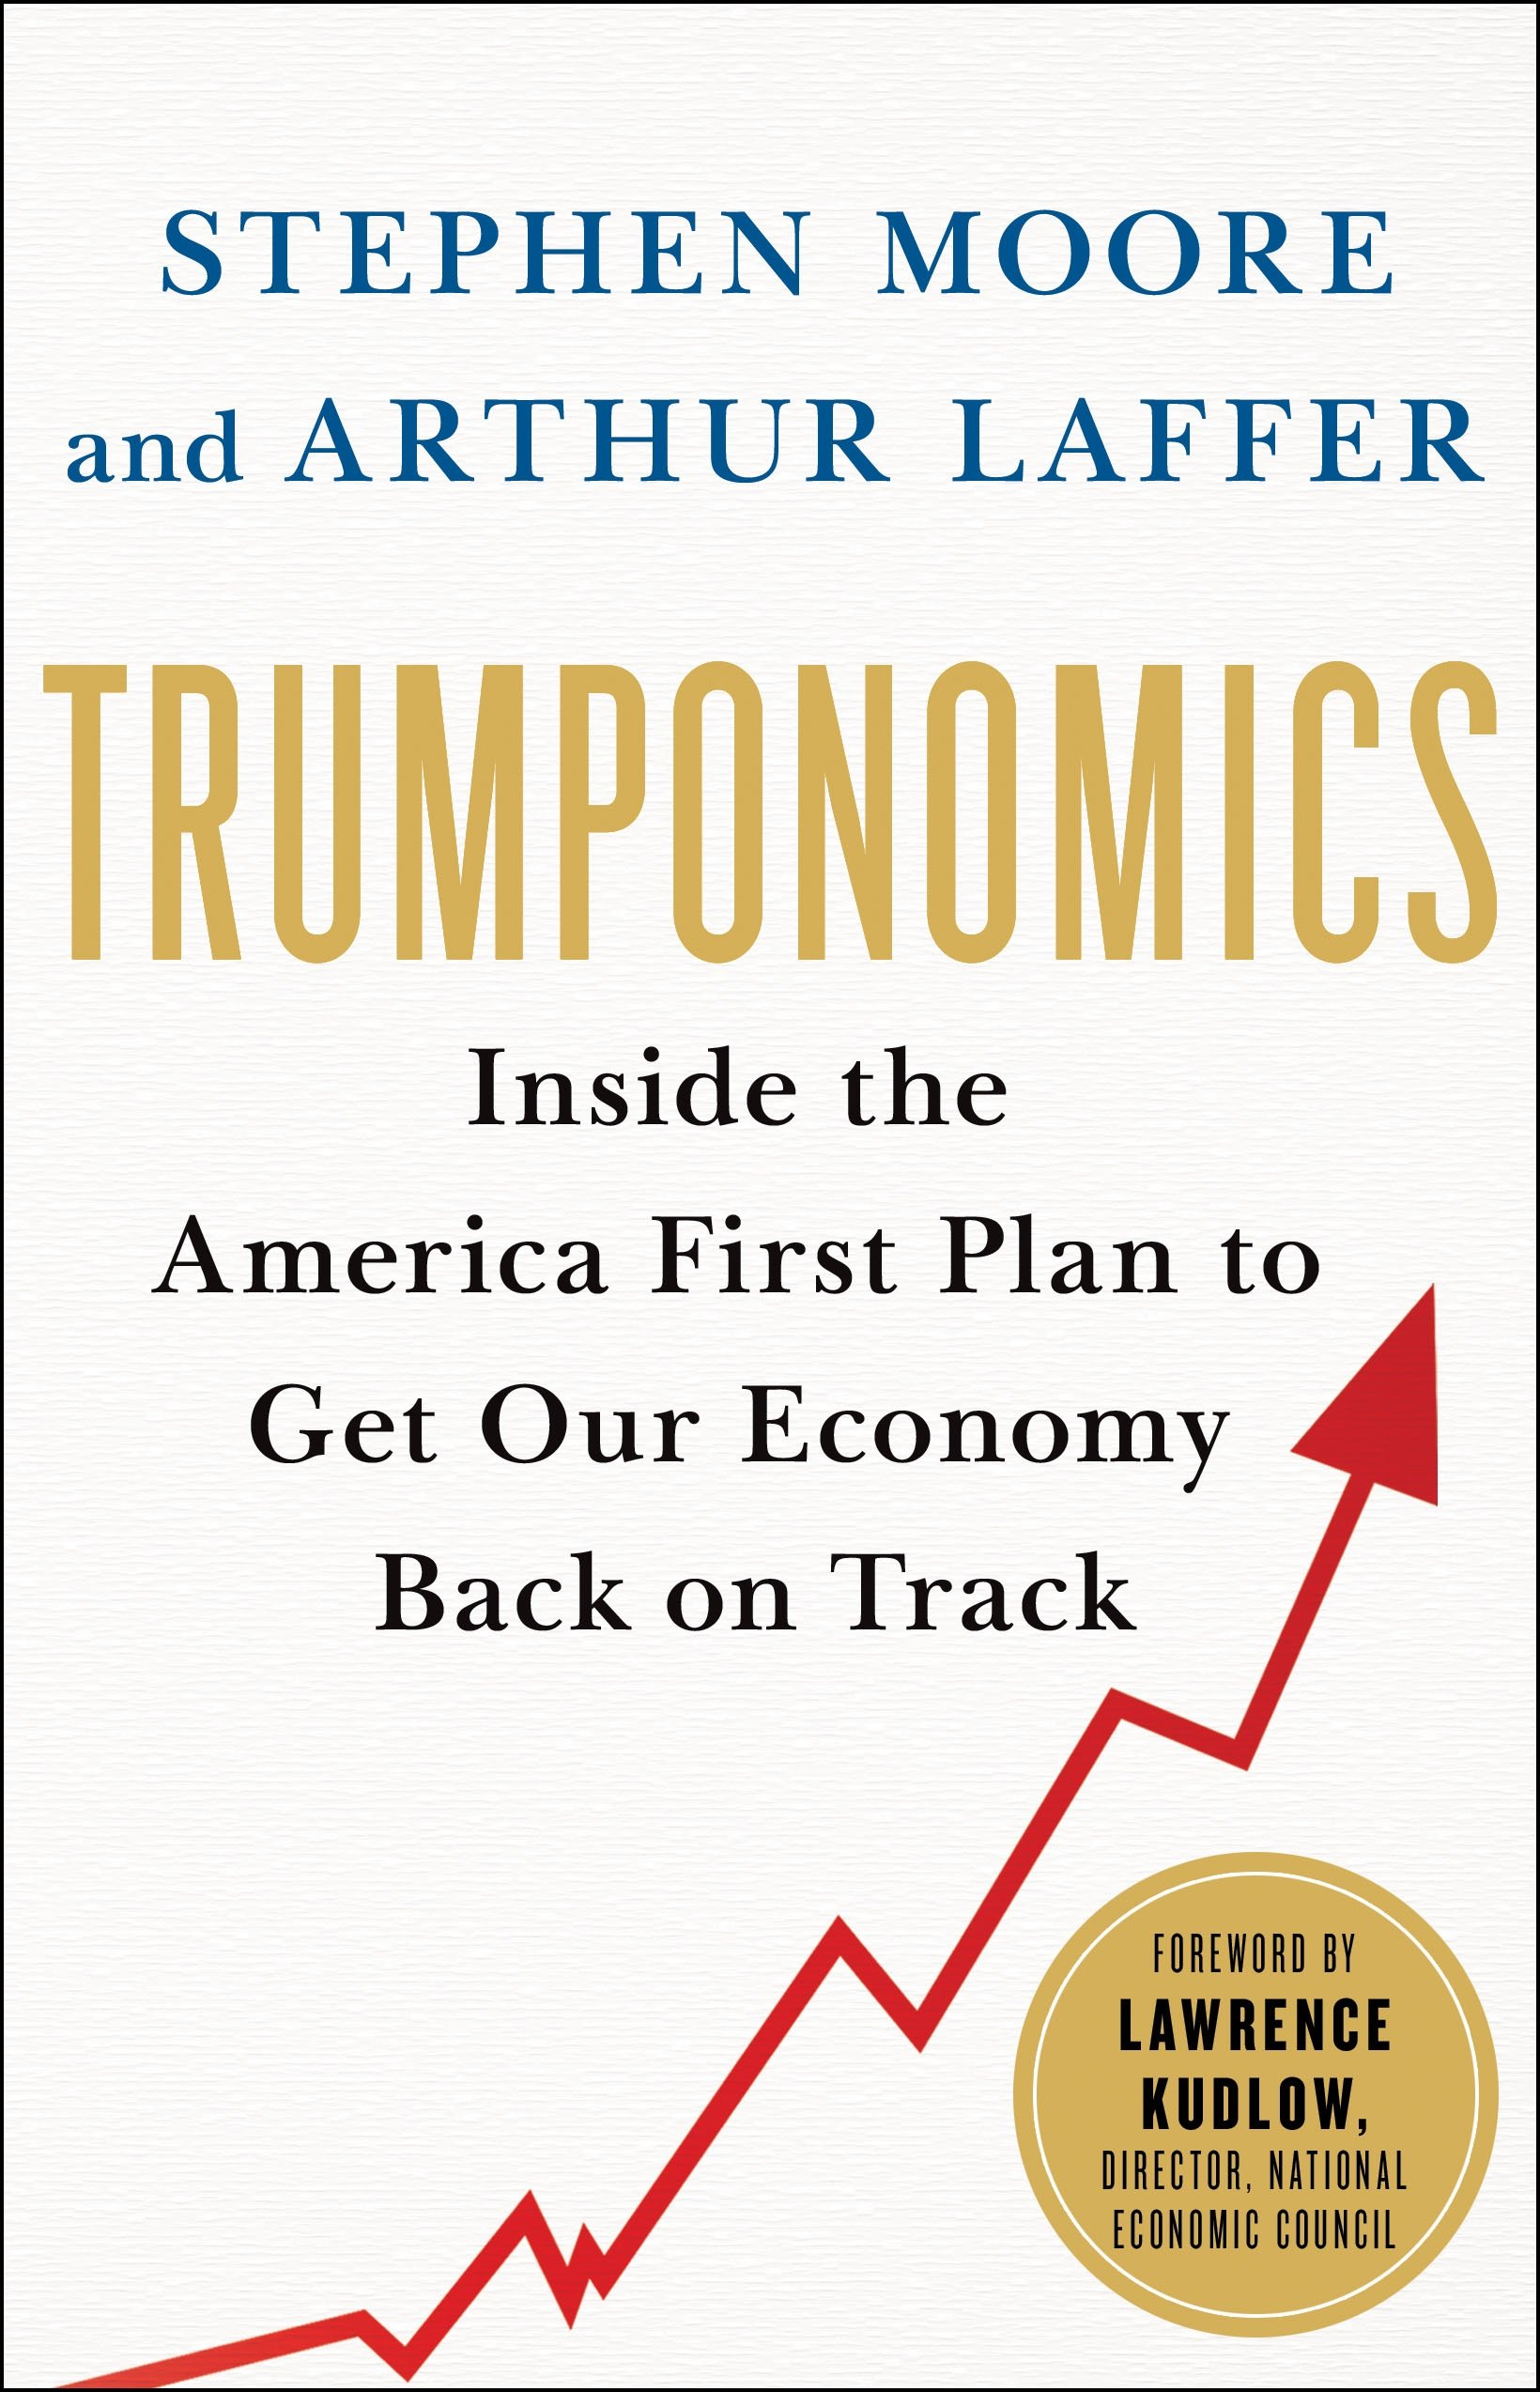 trumponomics-inside-the-america-first-plan-to-get-our-economy-back-on-track